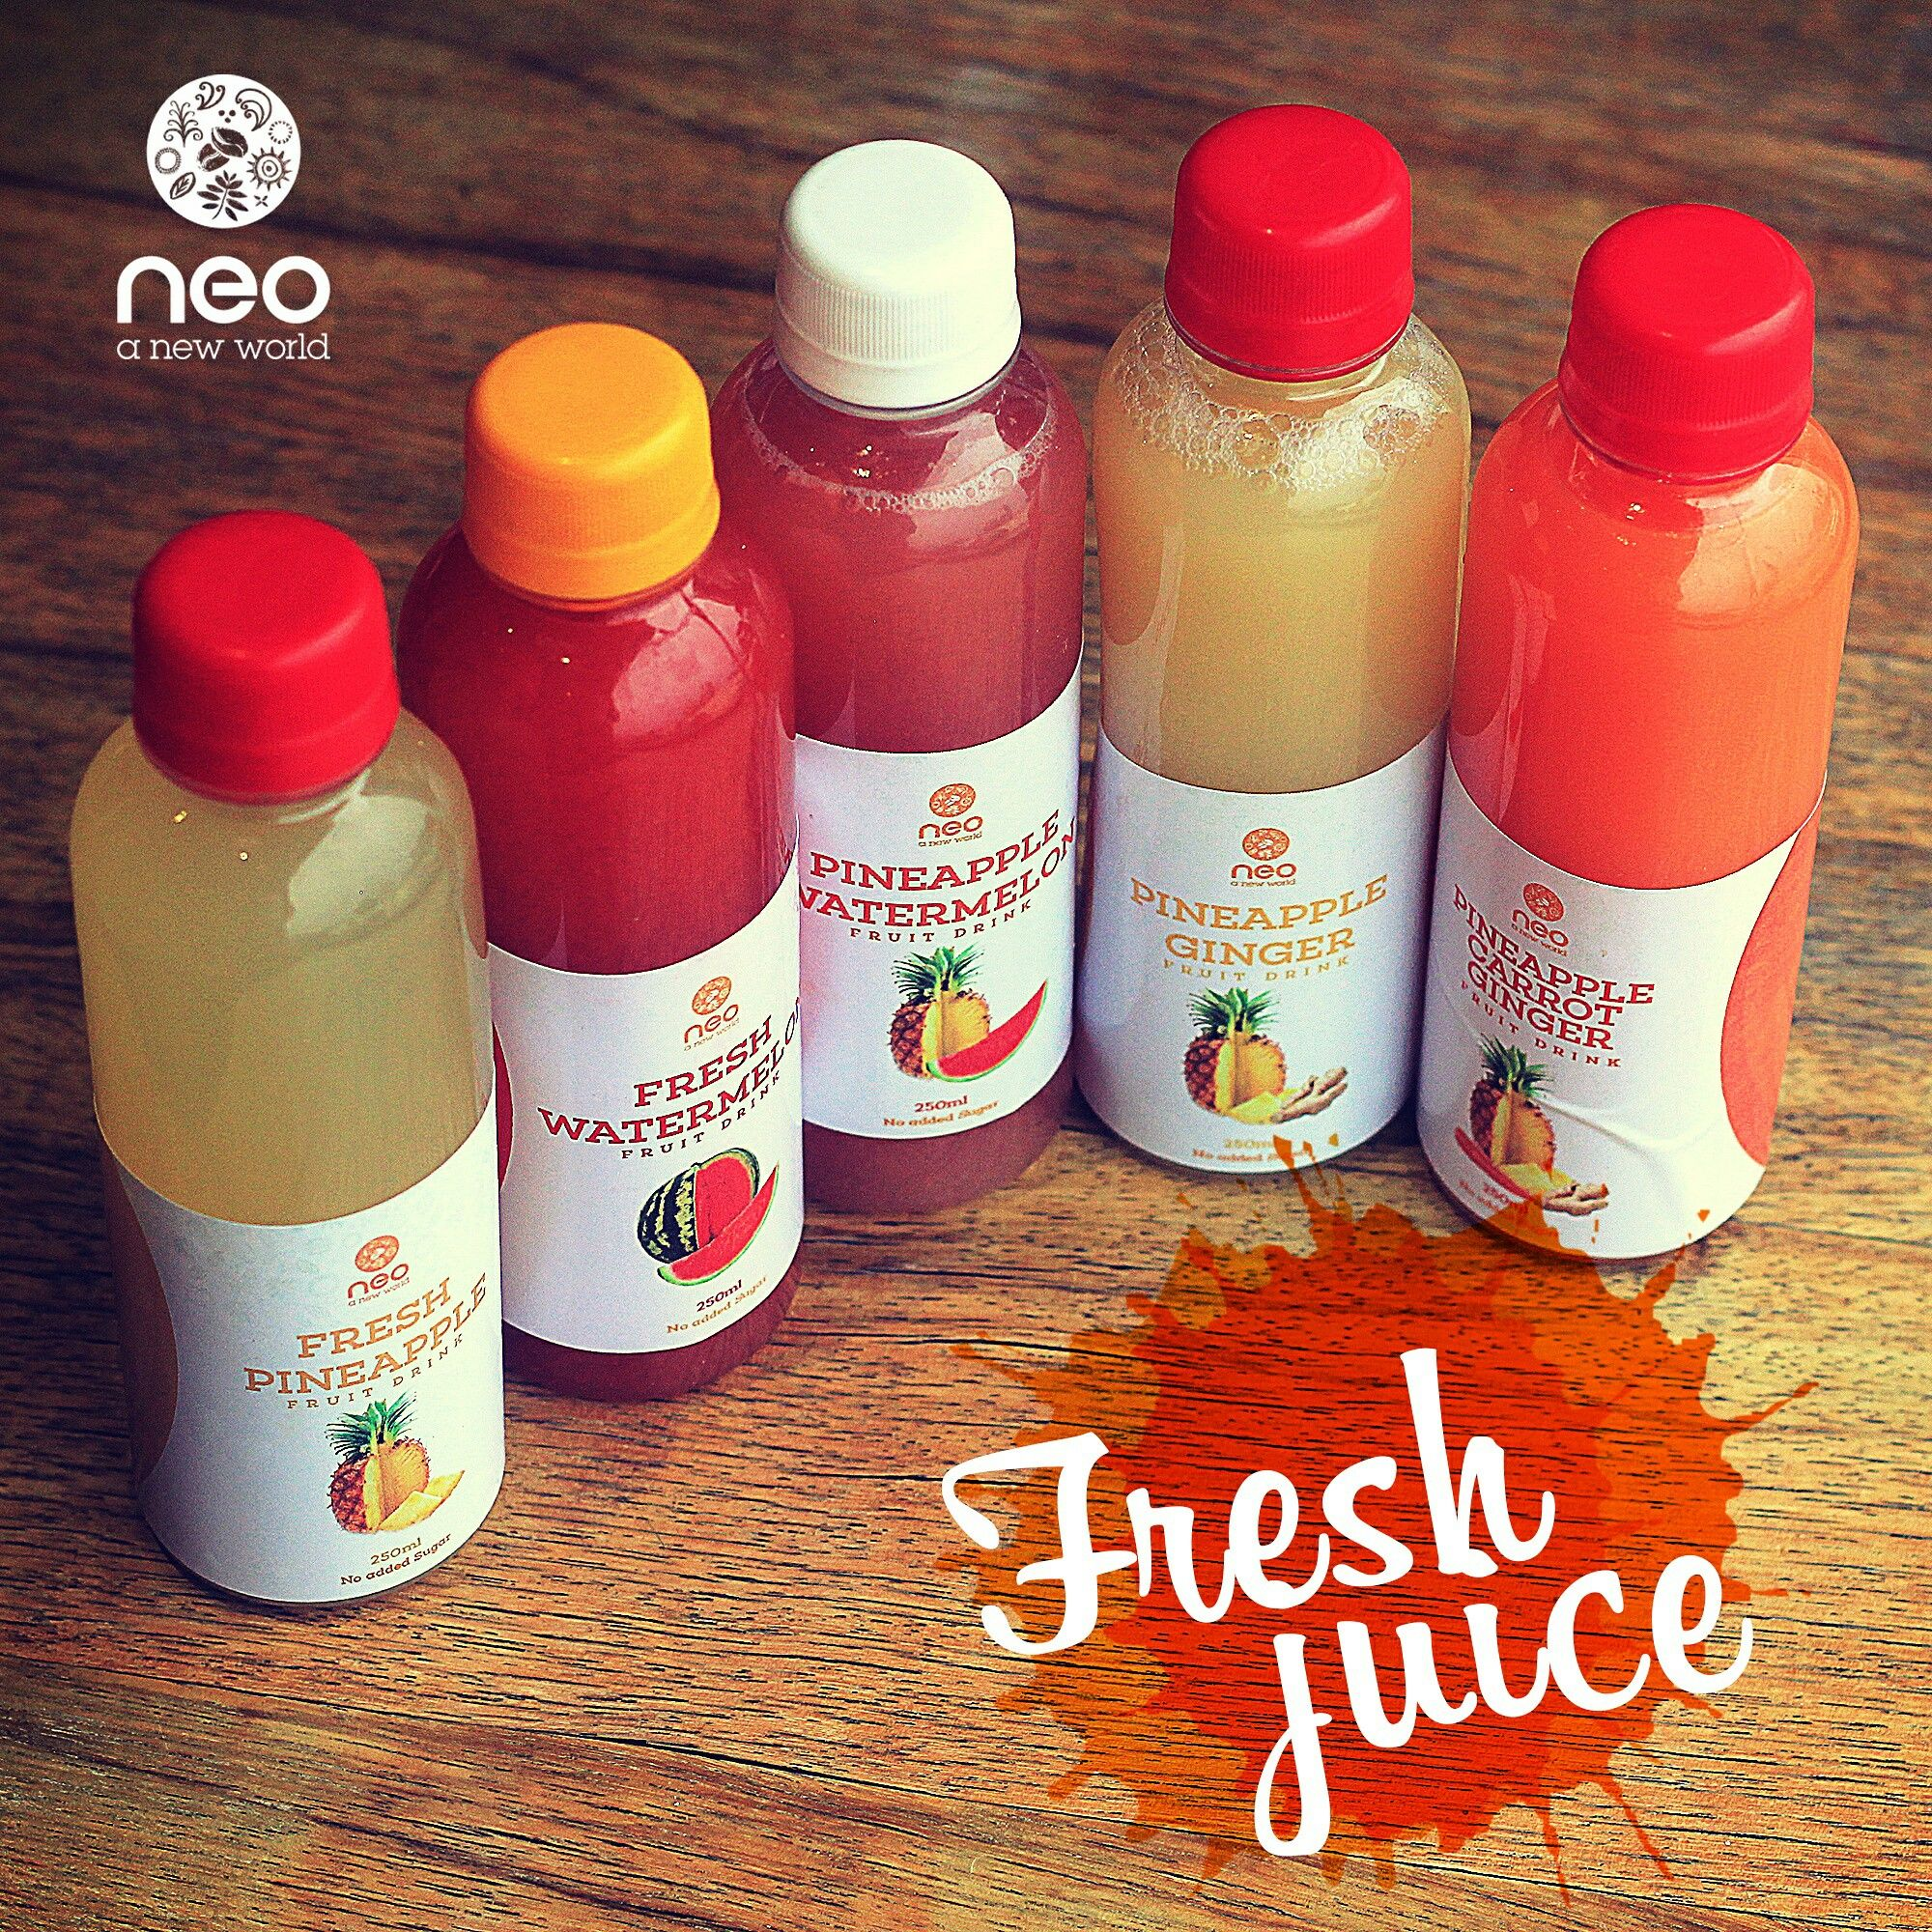 We all need a chilled bottle of freshly made #mycafeneo juice.